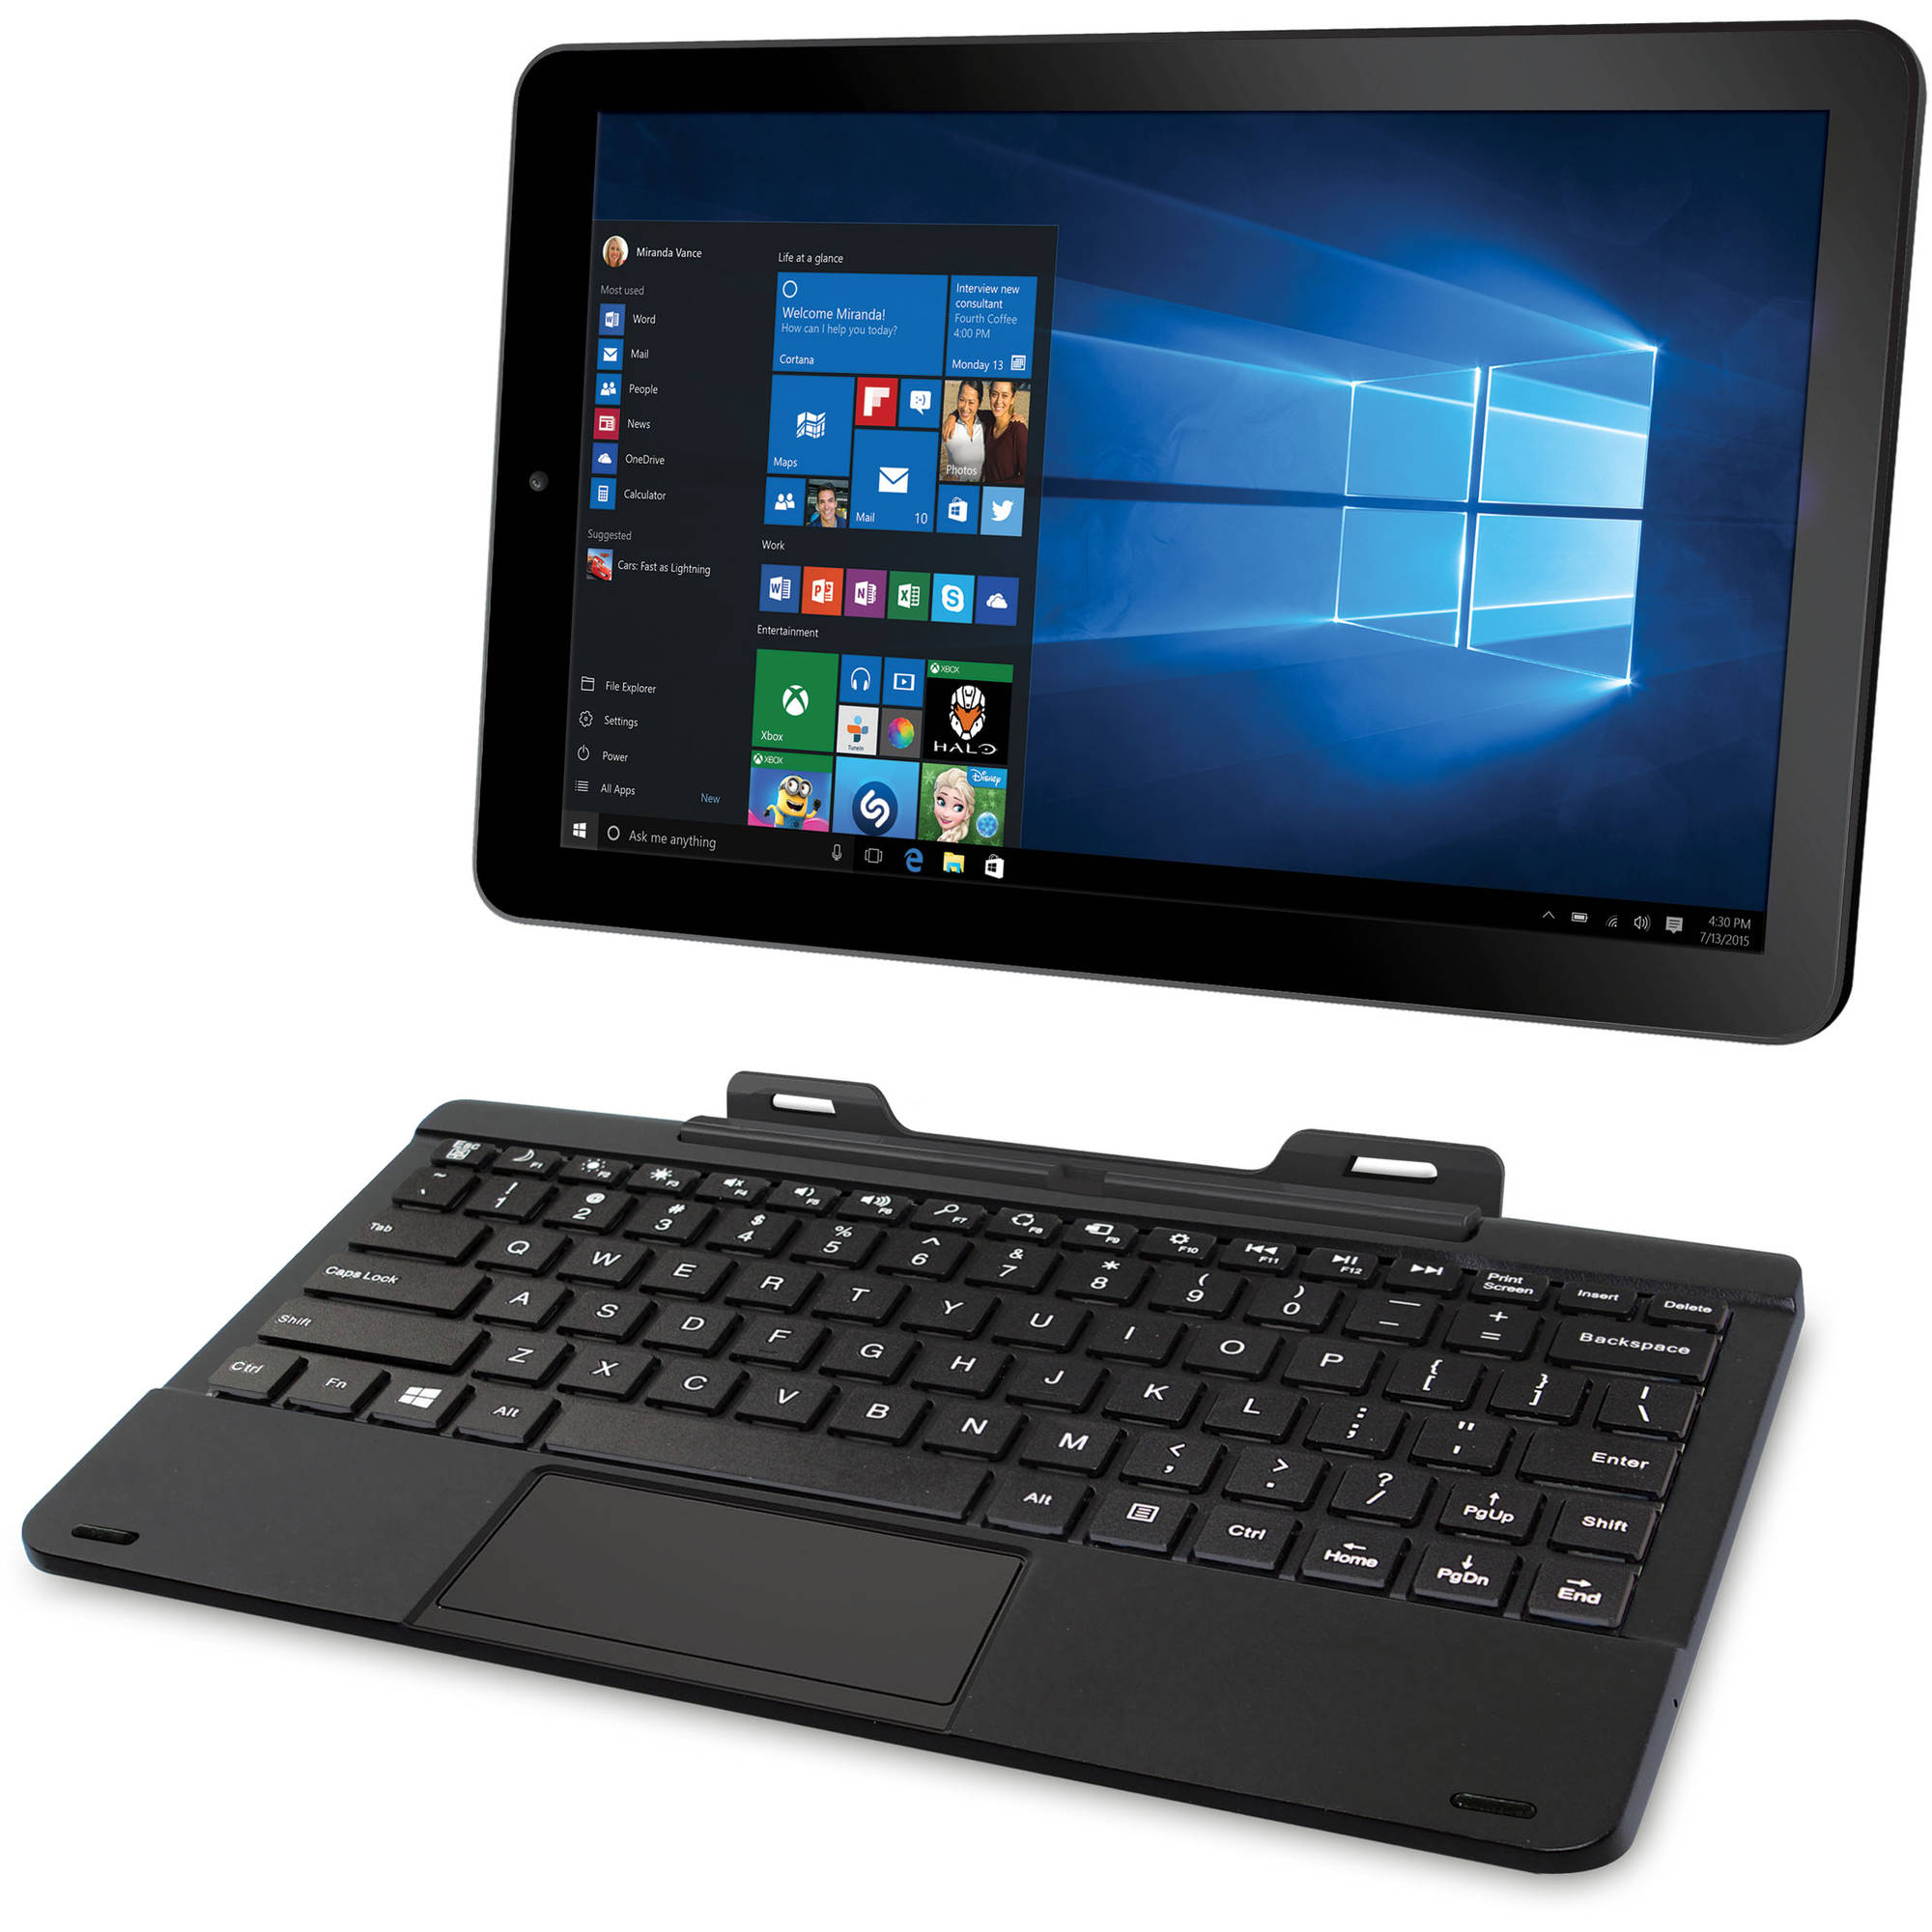 "RCA Cambio 10.1"" 2in1 Tablet 32GB Intel Atom Z3735F Quad-Core Processor Windows 8.1"